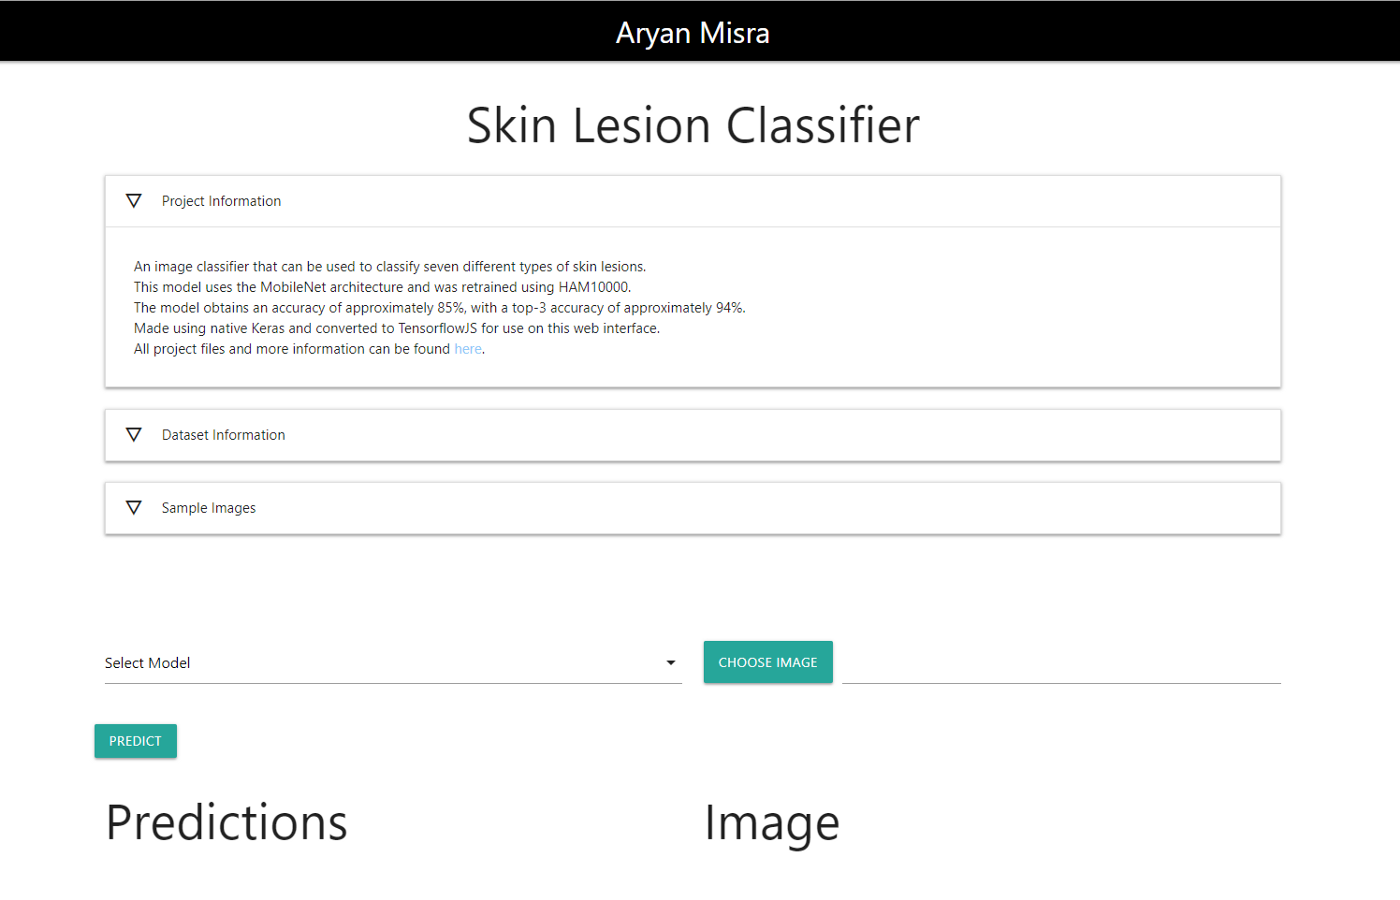 Classifying Skin Lesions with Convolutional Neural Networks